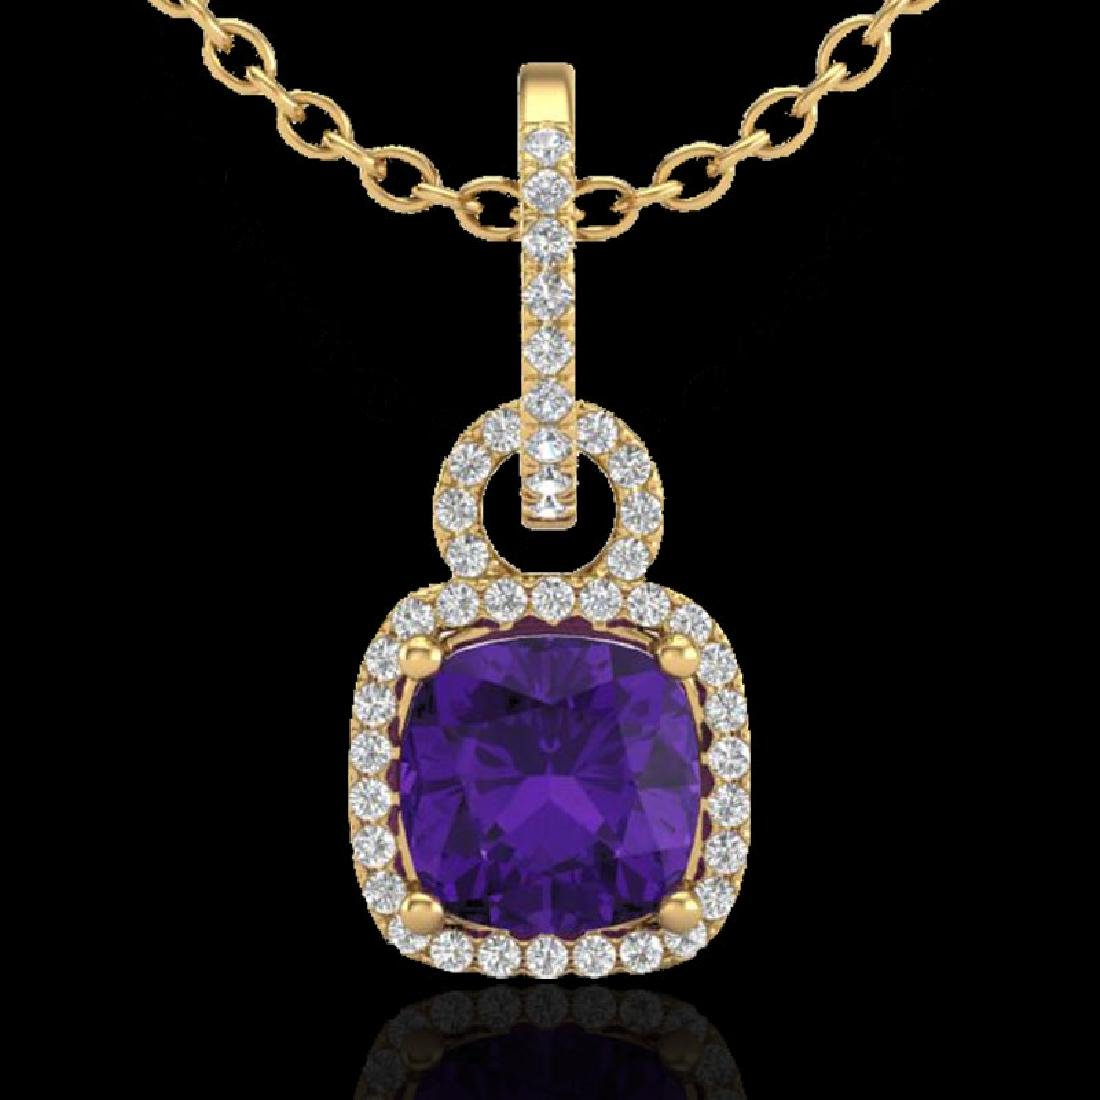 3.50 CTW Amethyst & Micro VS/SI Diamond Necklace 18K - 2